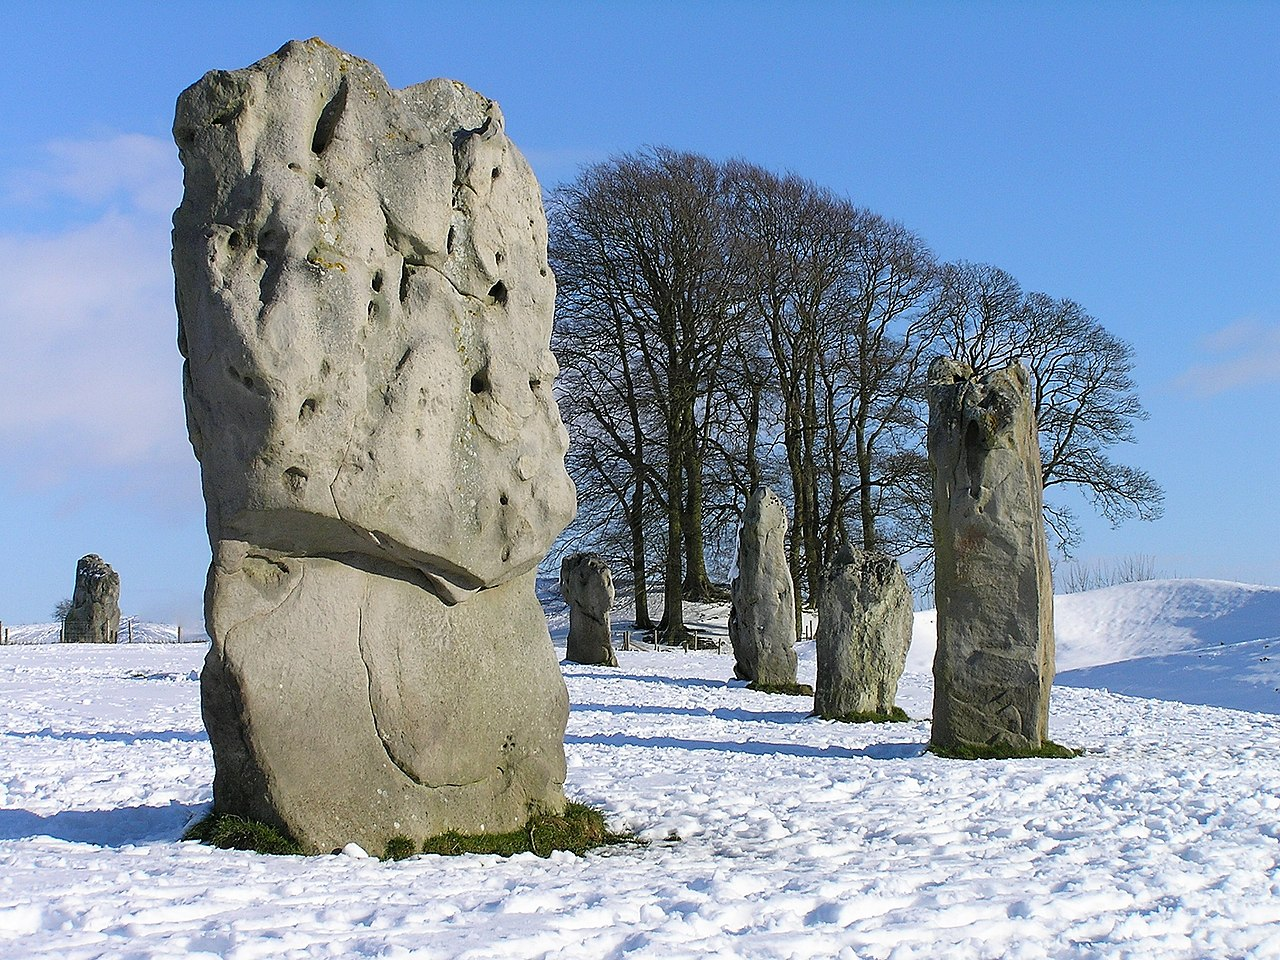 Avebury henge and stone circles, by Paul Adams